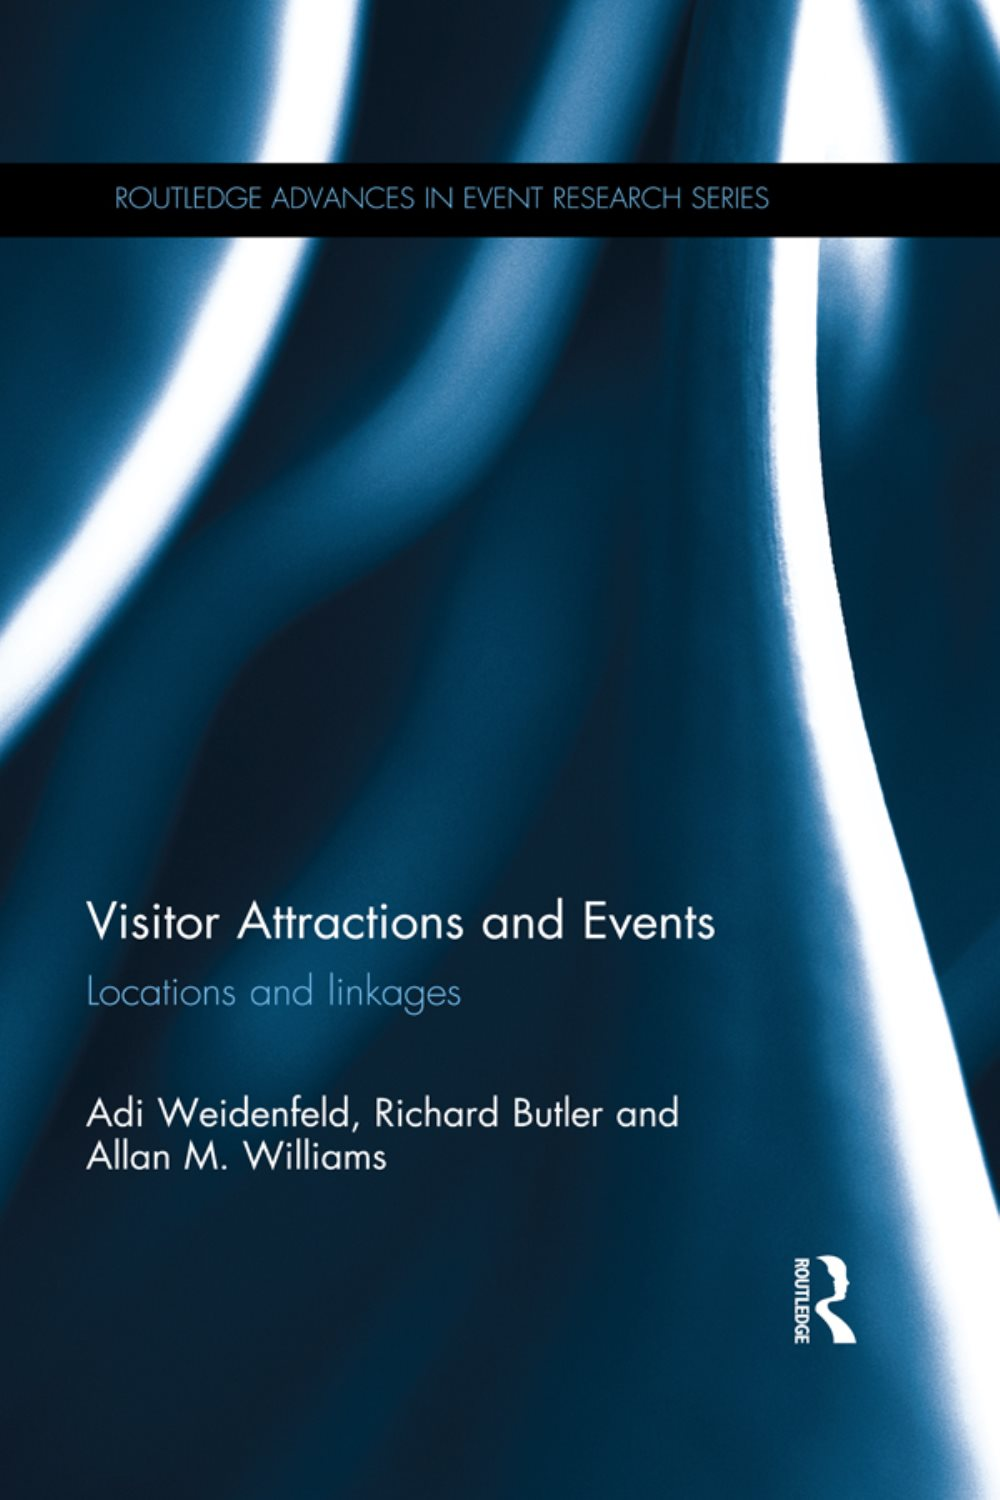 Visitor Attractions and Events